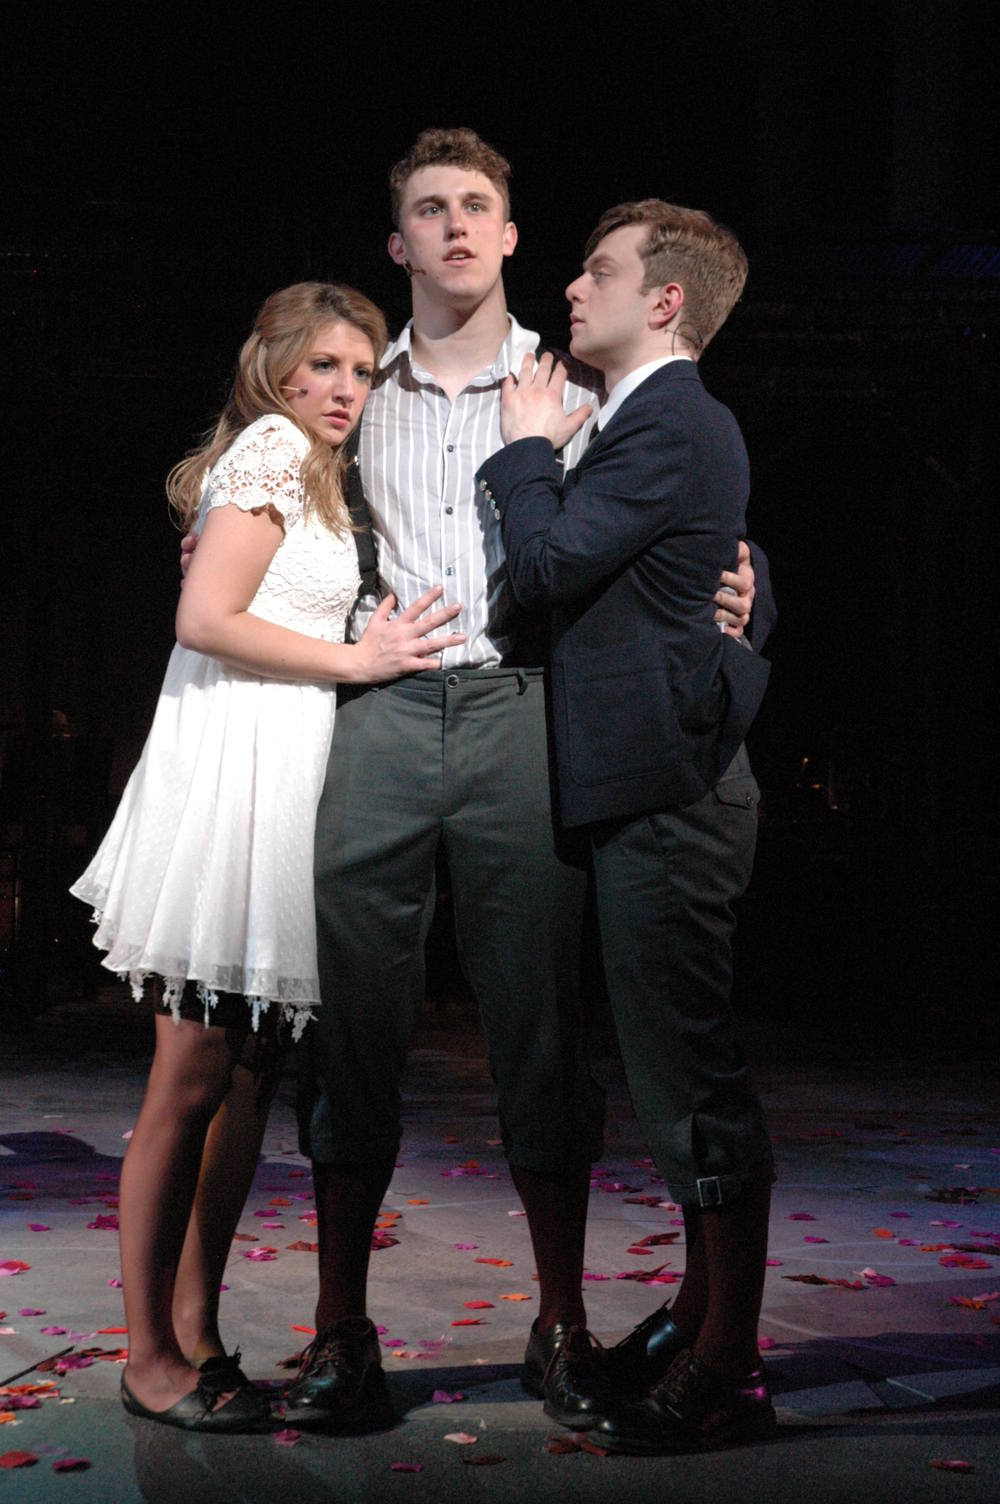 Wendla (Jaclyn Hergott), Melchior (David Kaplinsky) and Mortiz (Joe Boersma)